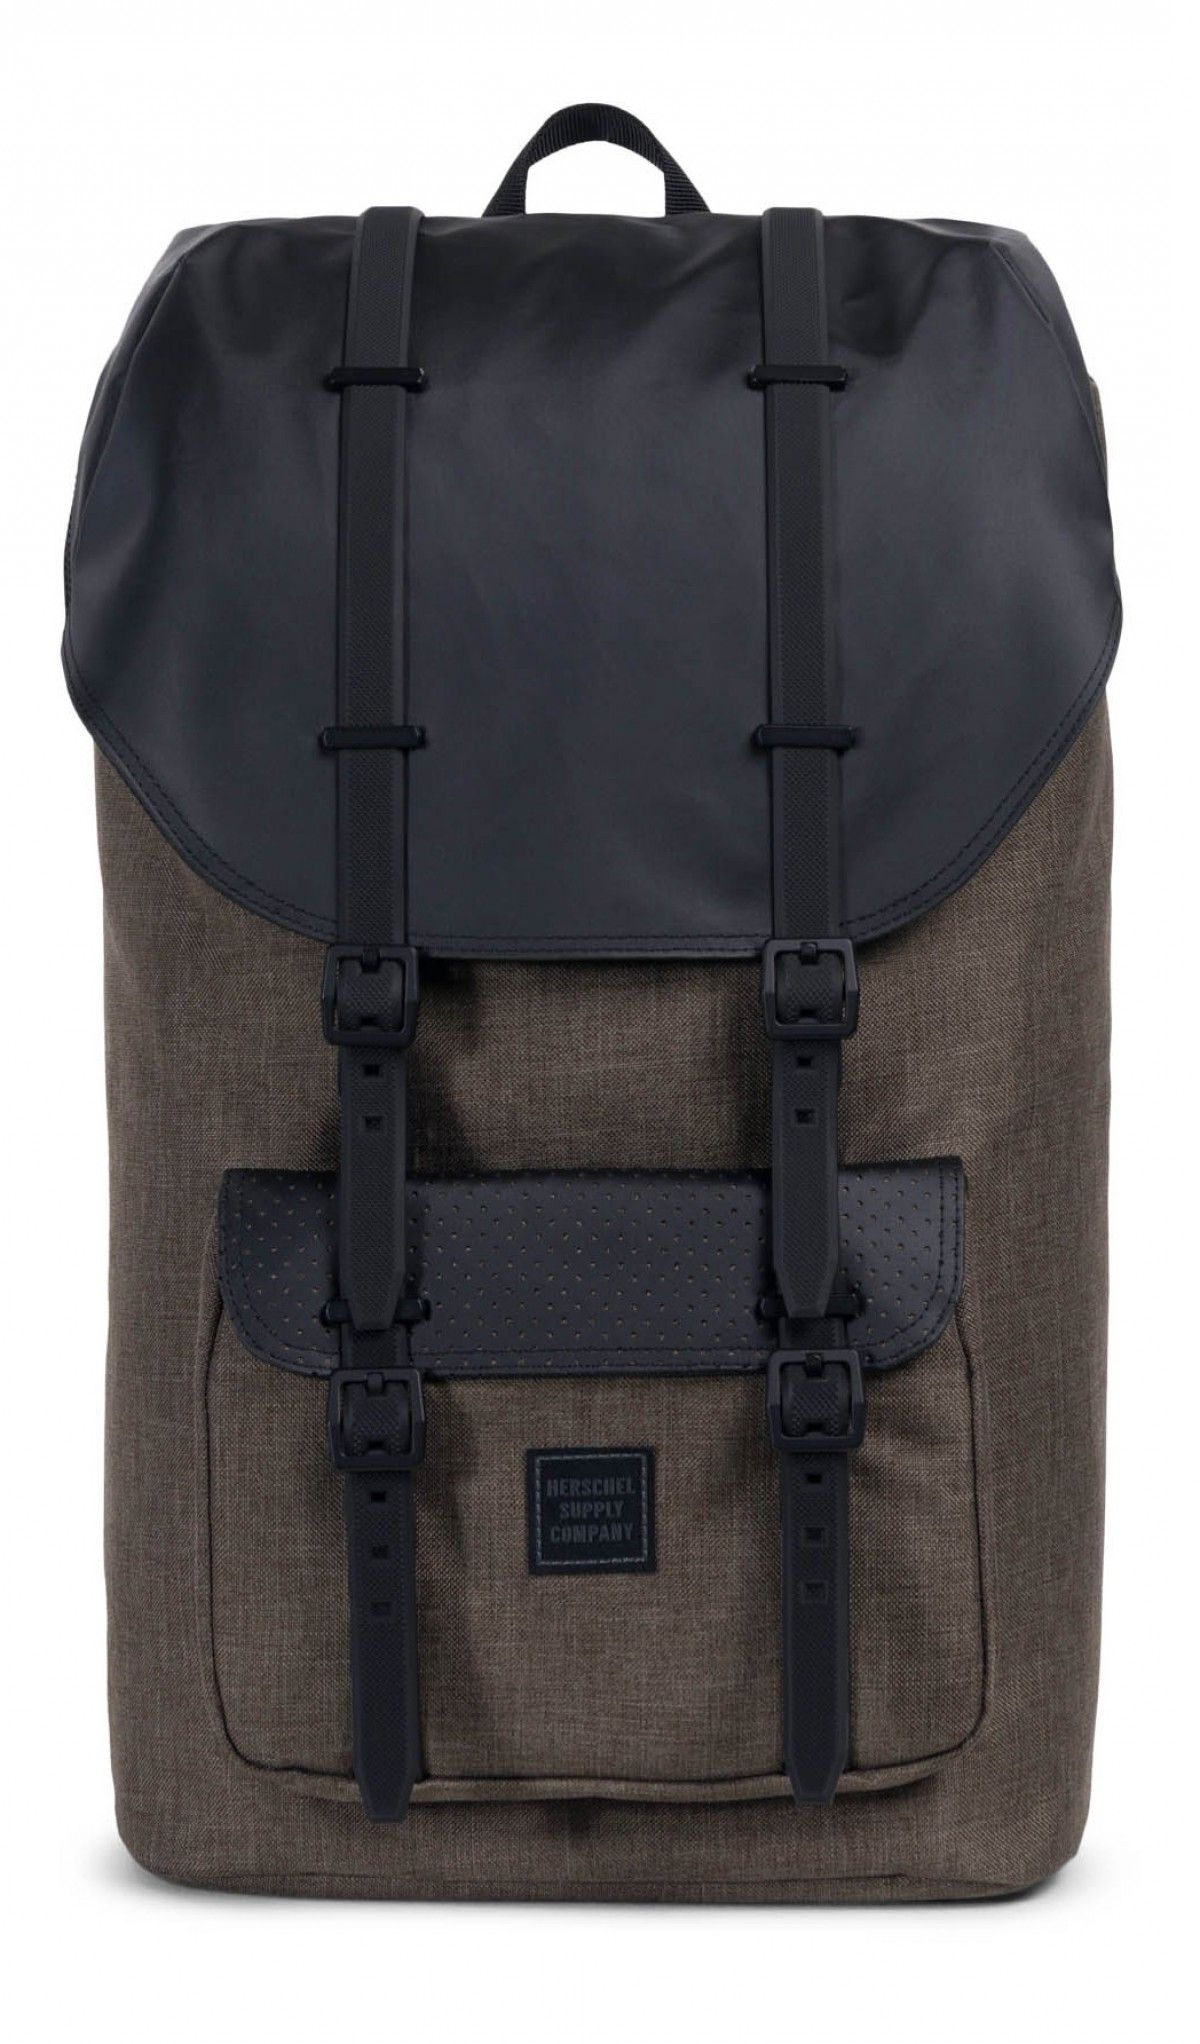 2635caa02e2a Herschel Little America Backpack Aspect Canteen Crosshatch Black ...